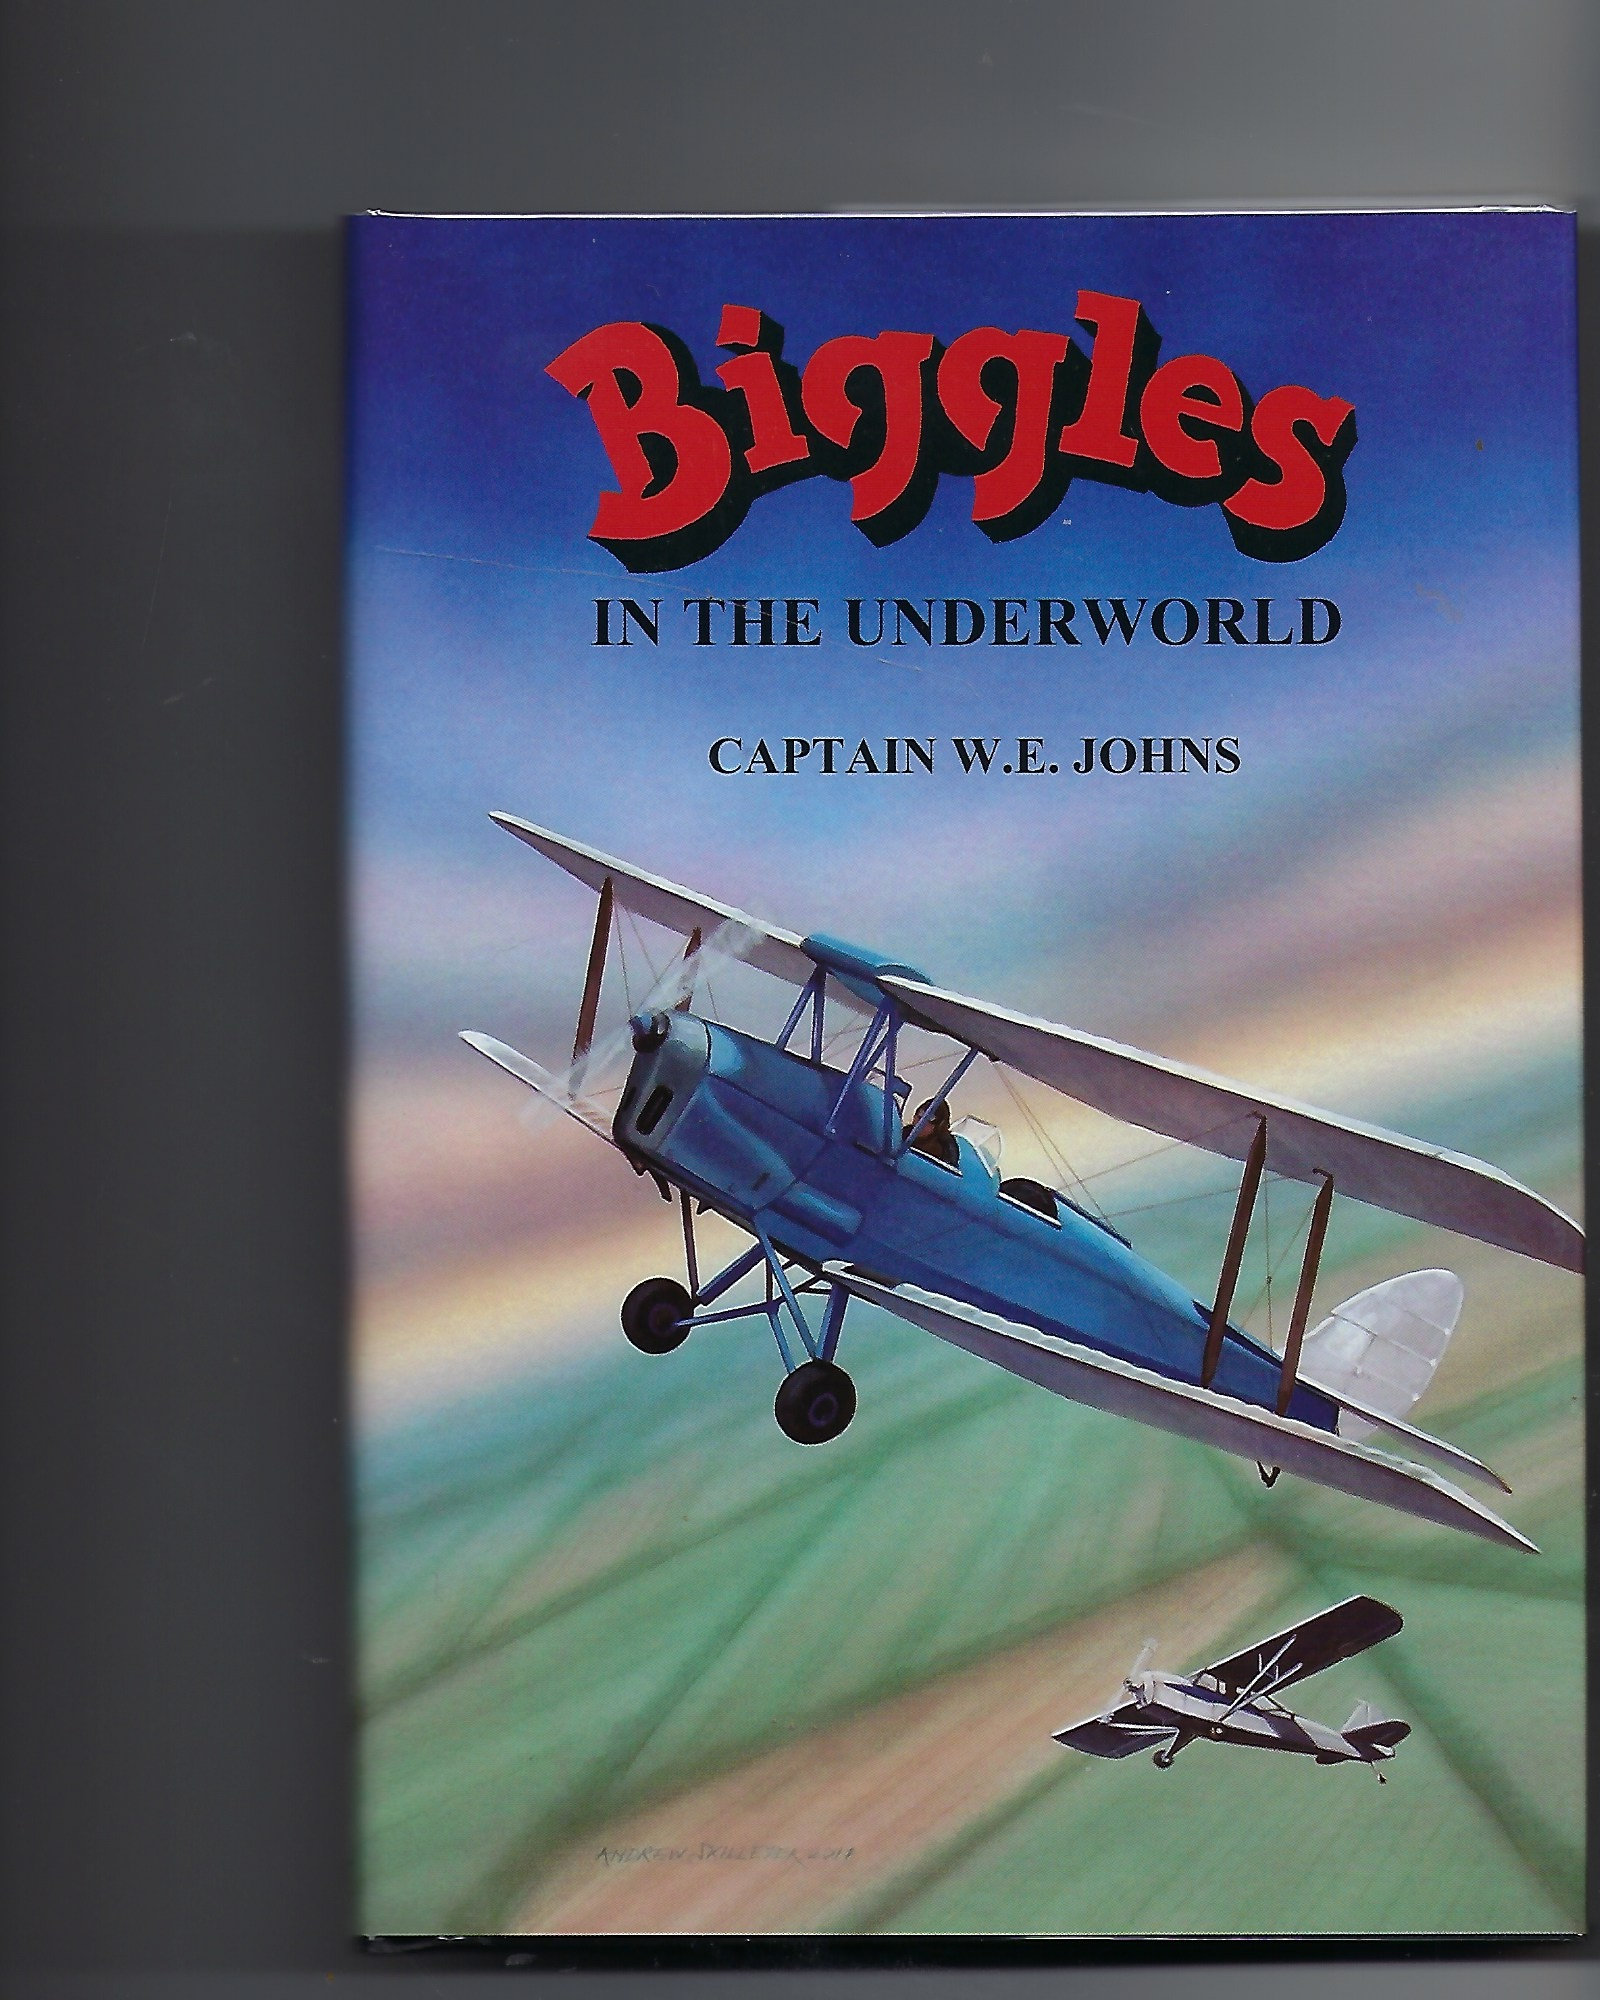 Biggles in the Underworld - Signed Limited Edition